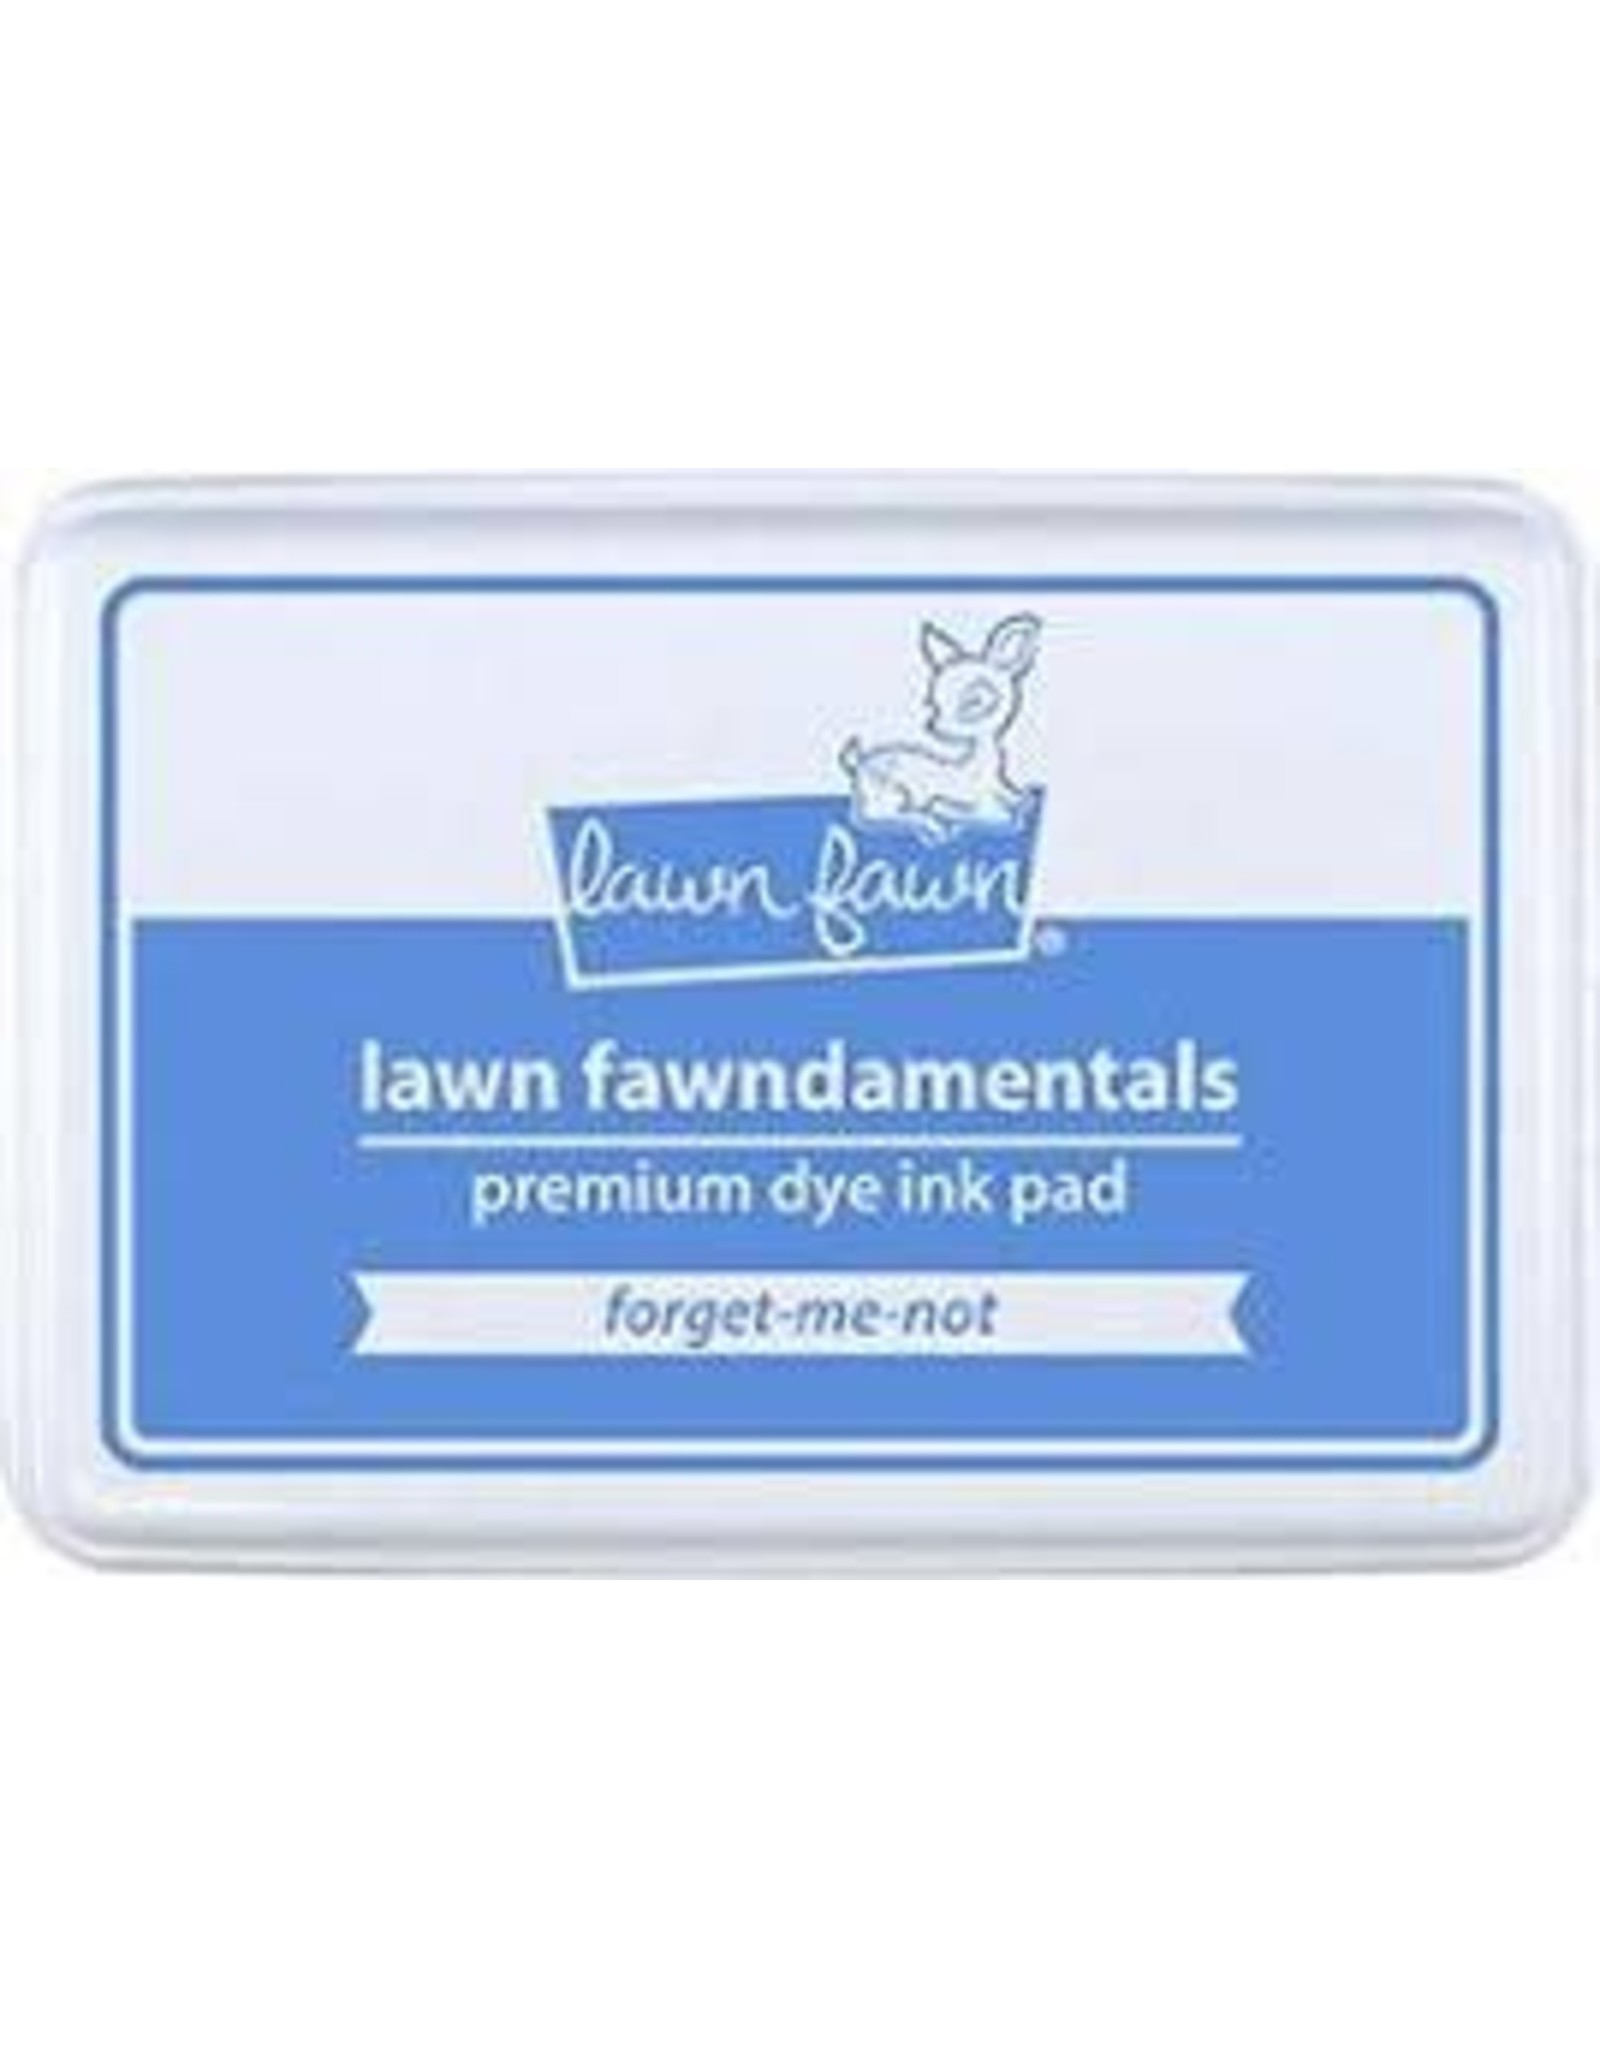 Lawn Fawn Lawn Fawndamentals Dye Ink Pad - Forget Me Not